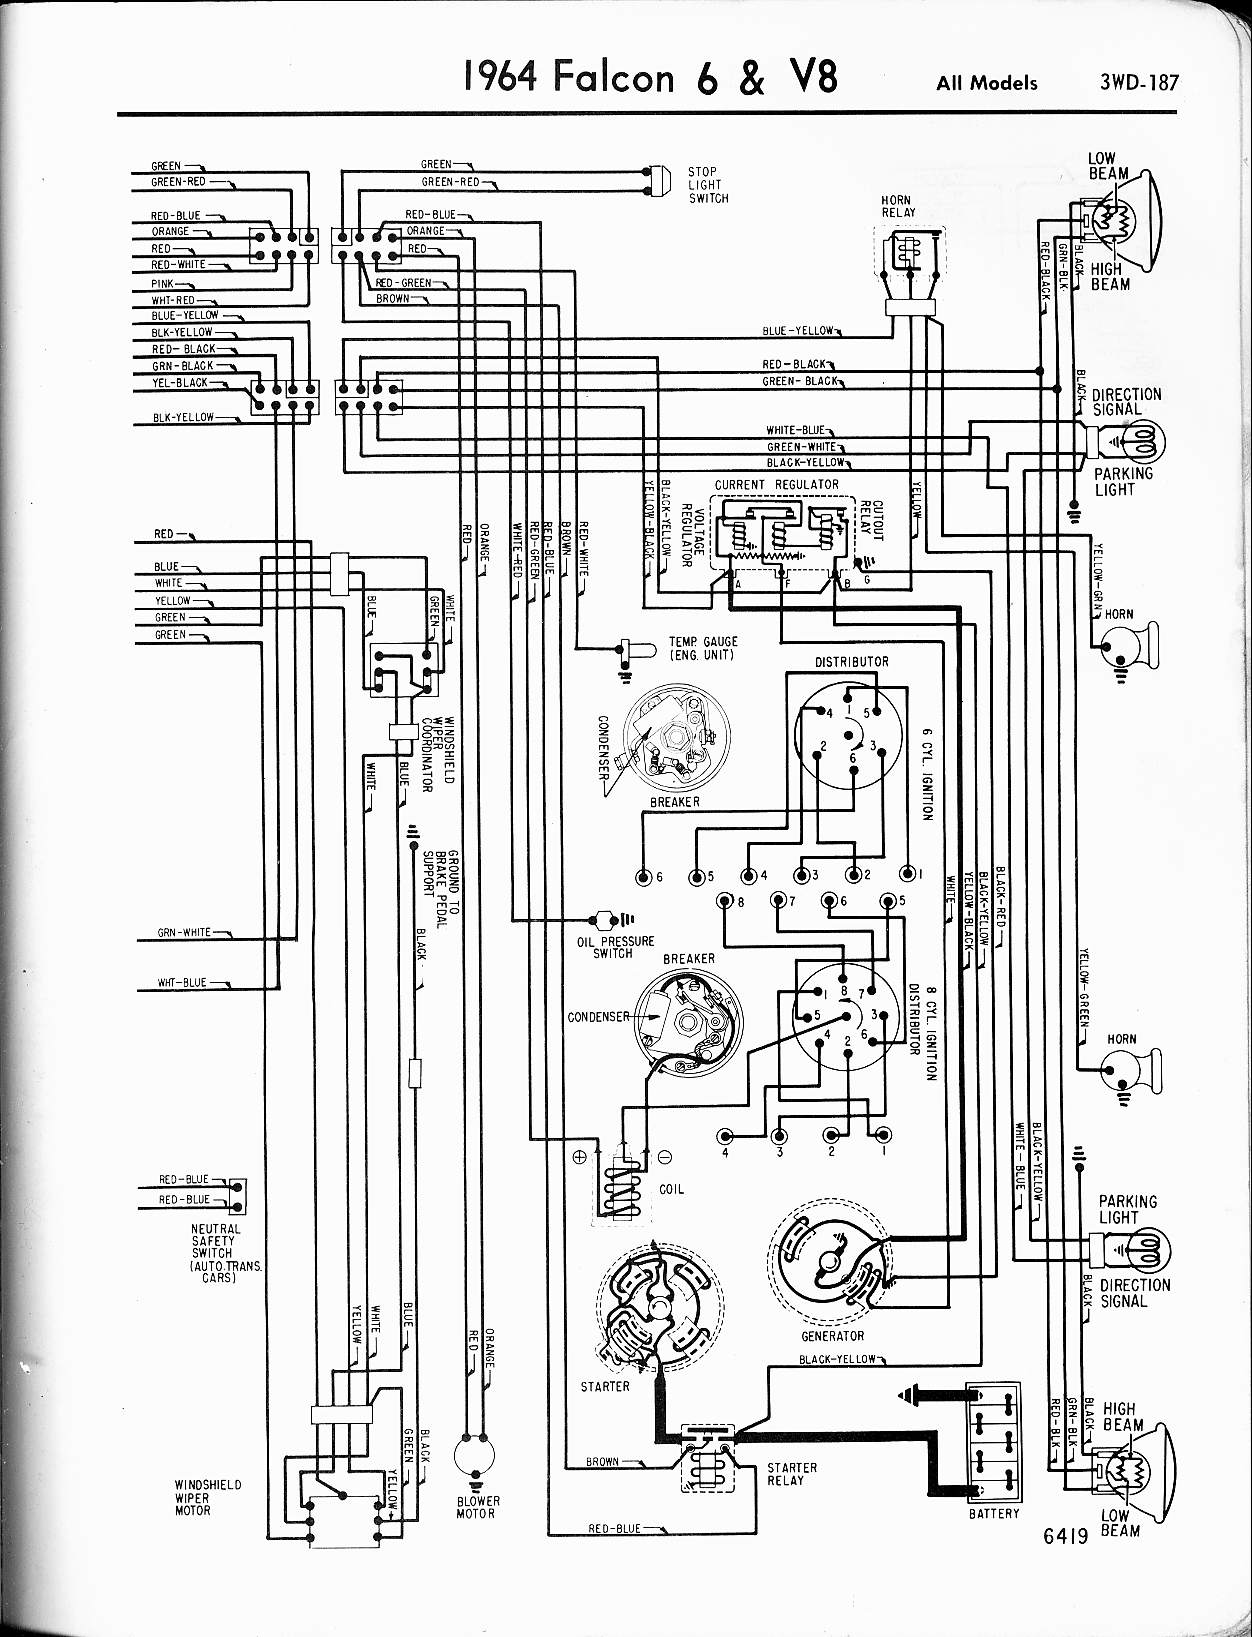 MWire5765 187 ba falcon wiring diagram 1965 mustang wiring harness diagram ba falcon wiring diagram free download at nearapp.co